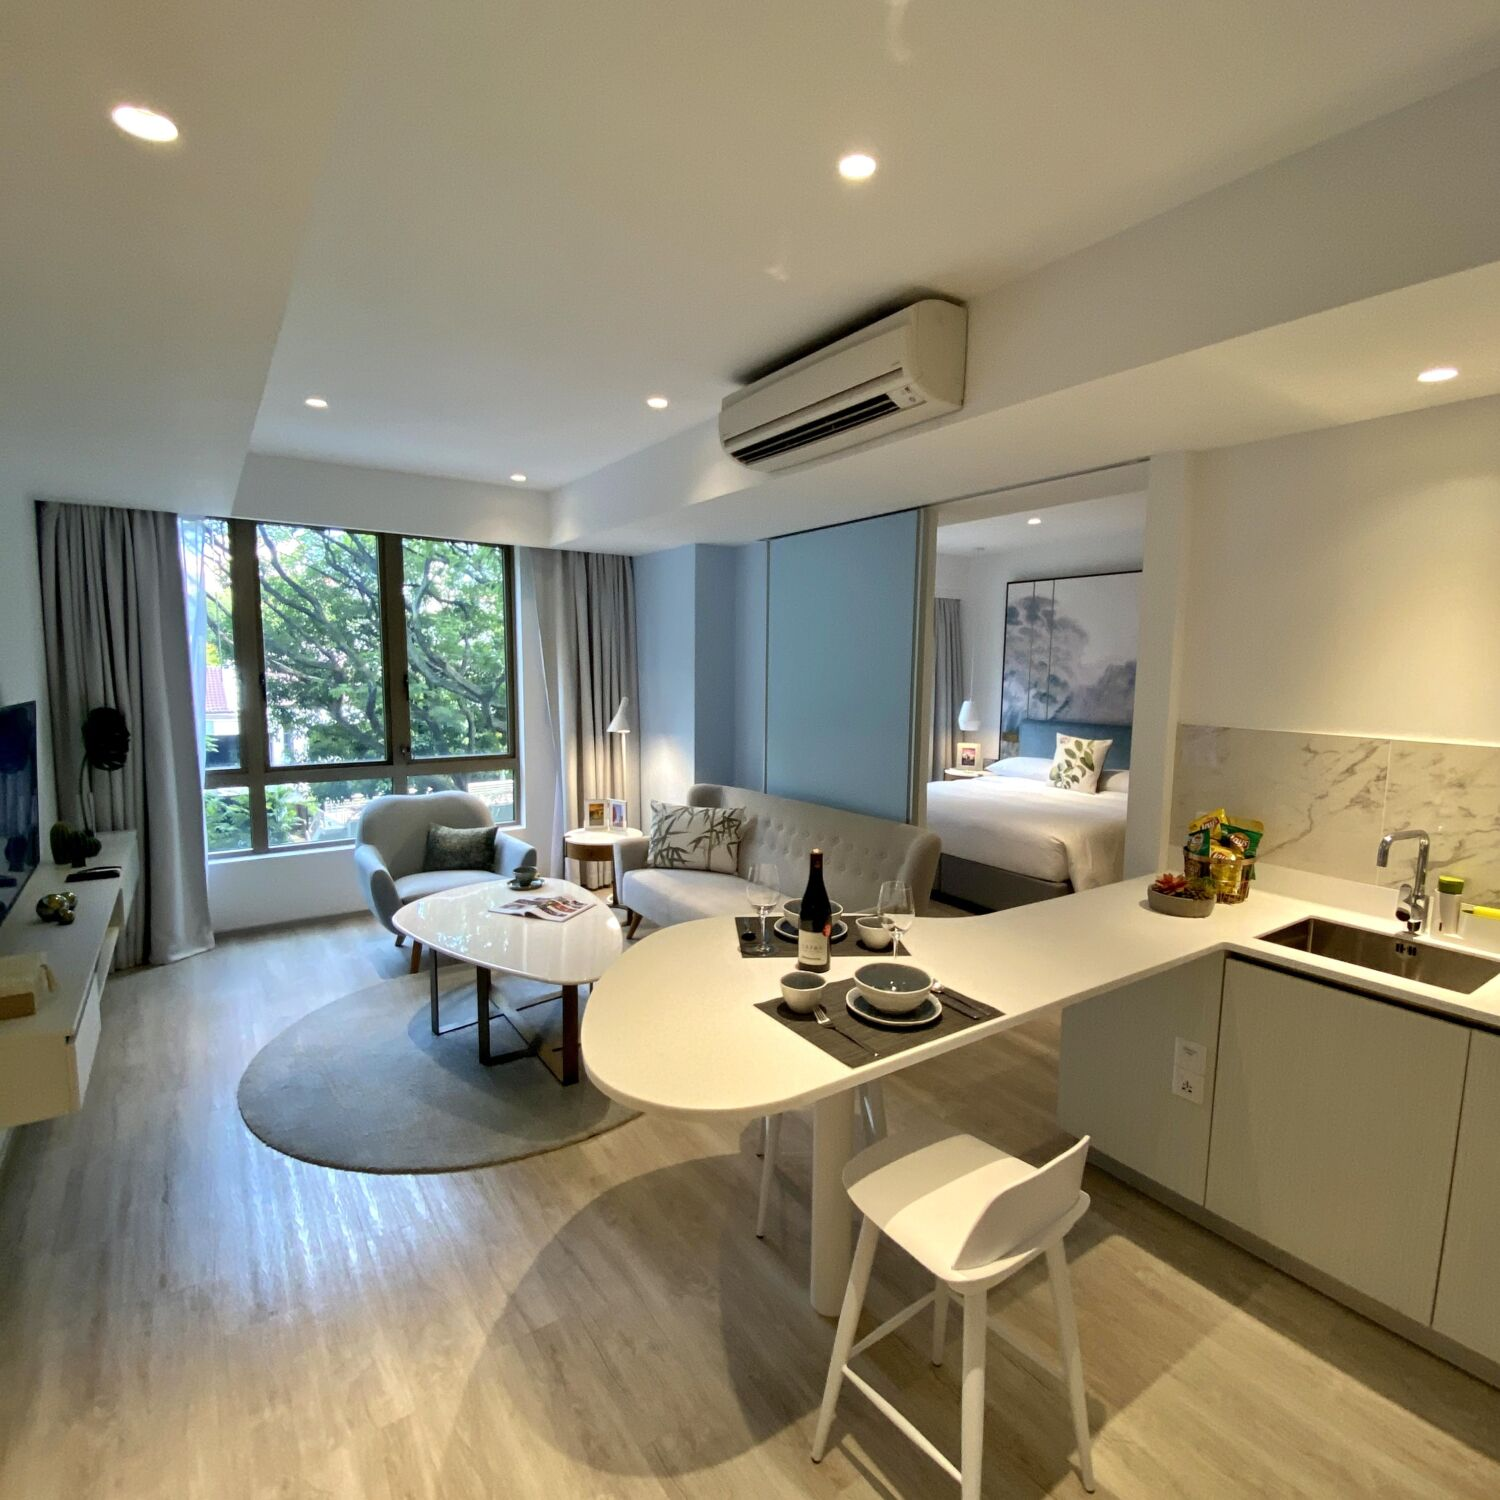 Winsland Serviced Suites by Lanson Place One-Bedroom Executive Suite